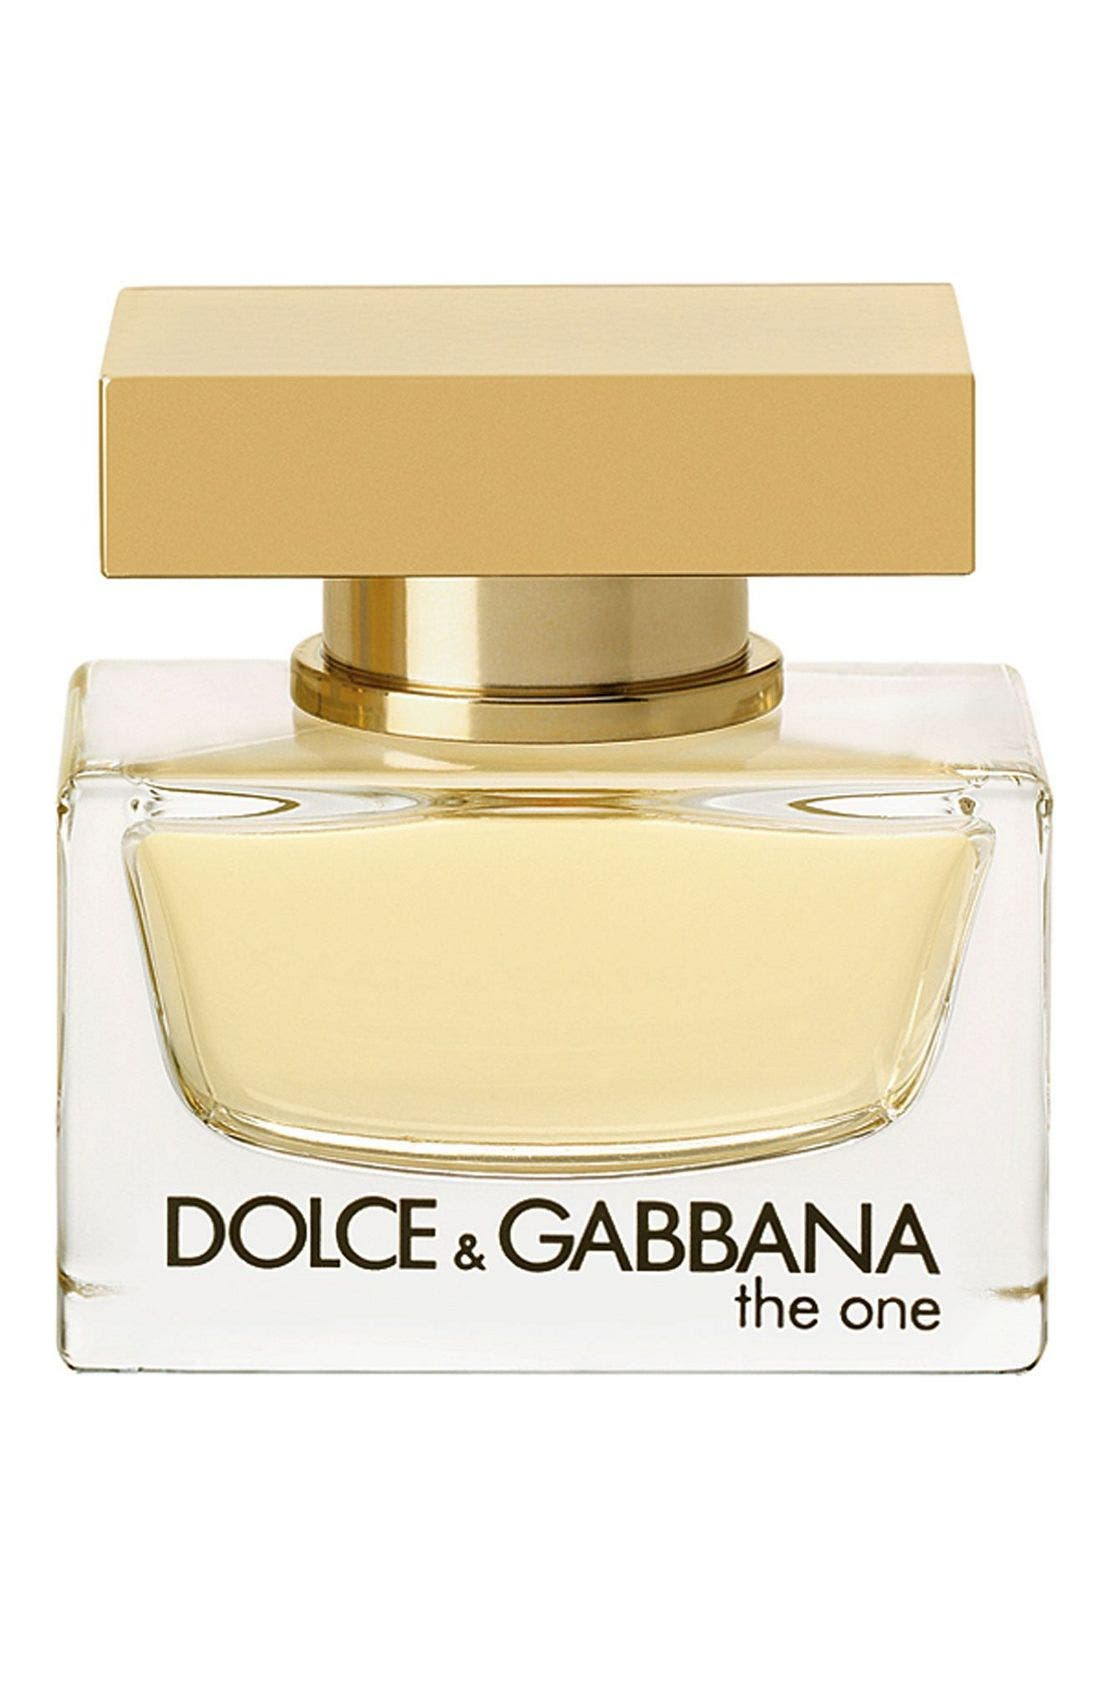 Dolce&Gabbana Beauty 'The One' Eau de Parfum